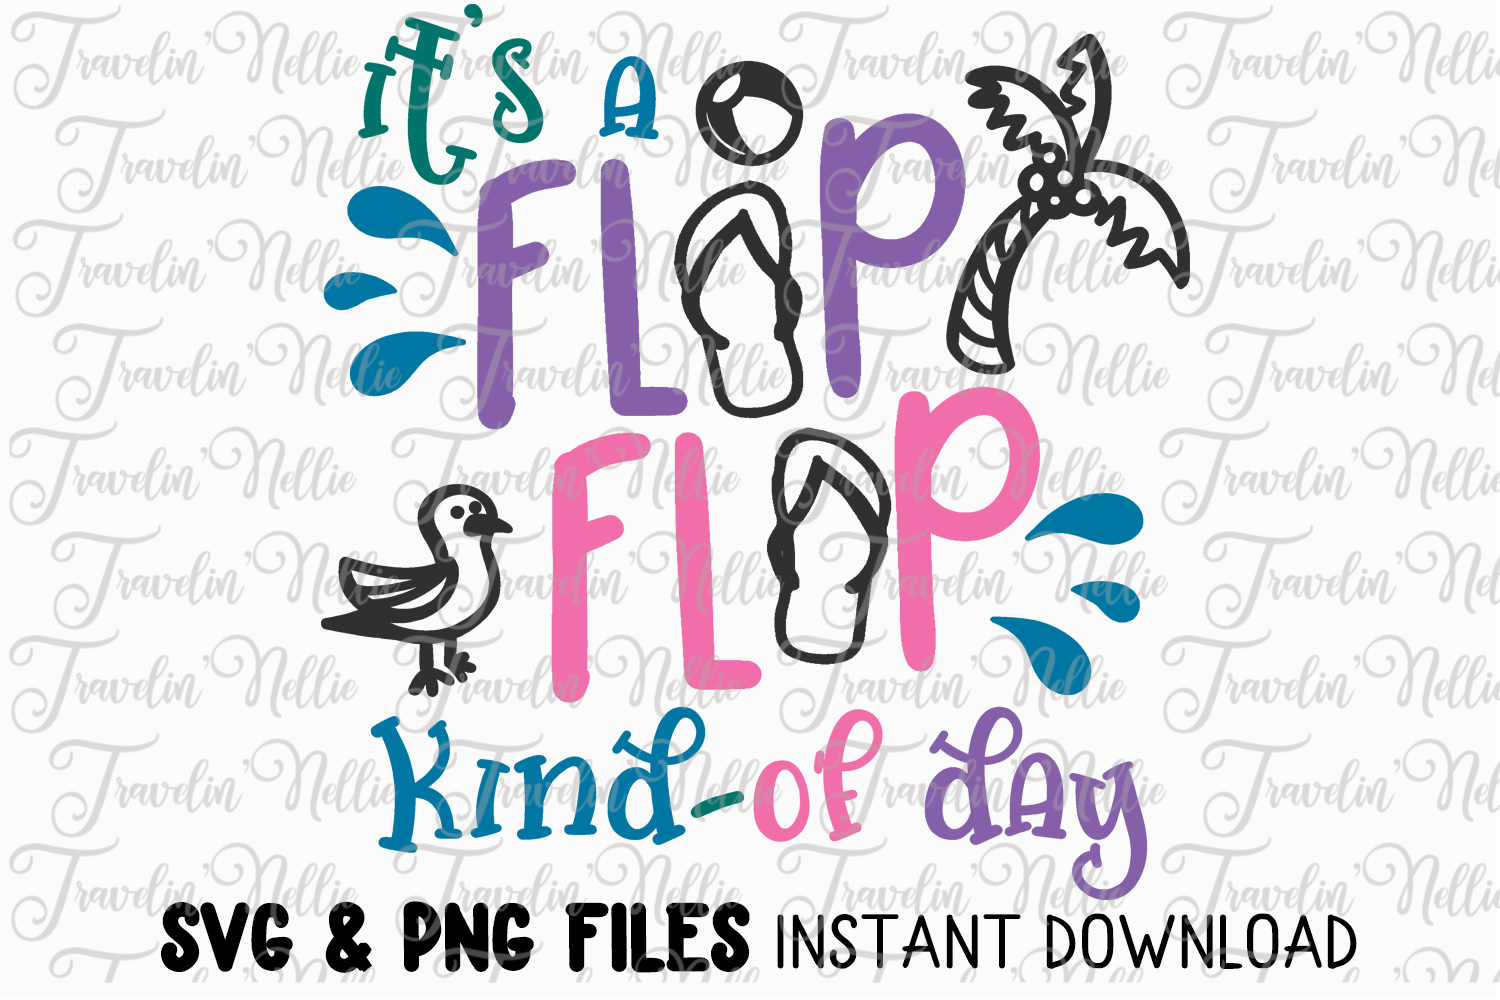 2336edc23 It a flip flop day cut file cricut silhouette quote example image jpg  1500x1000 Svg cuts